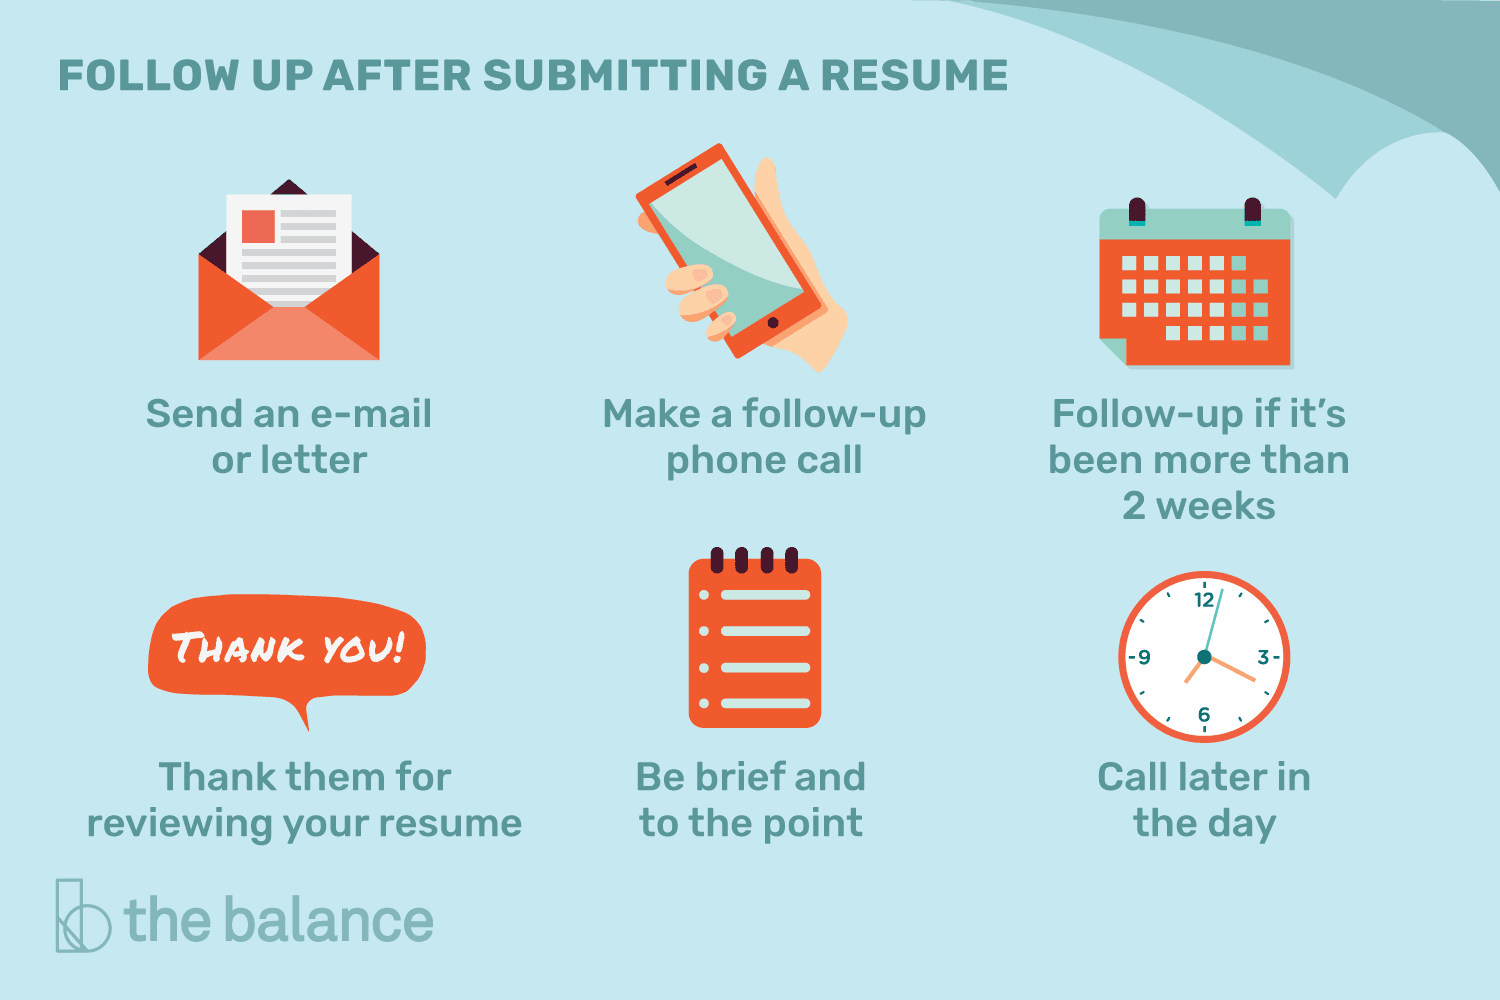 How To Follow Up On Your Resume